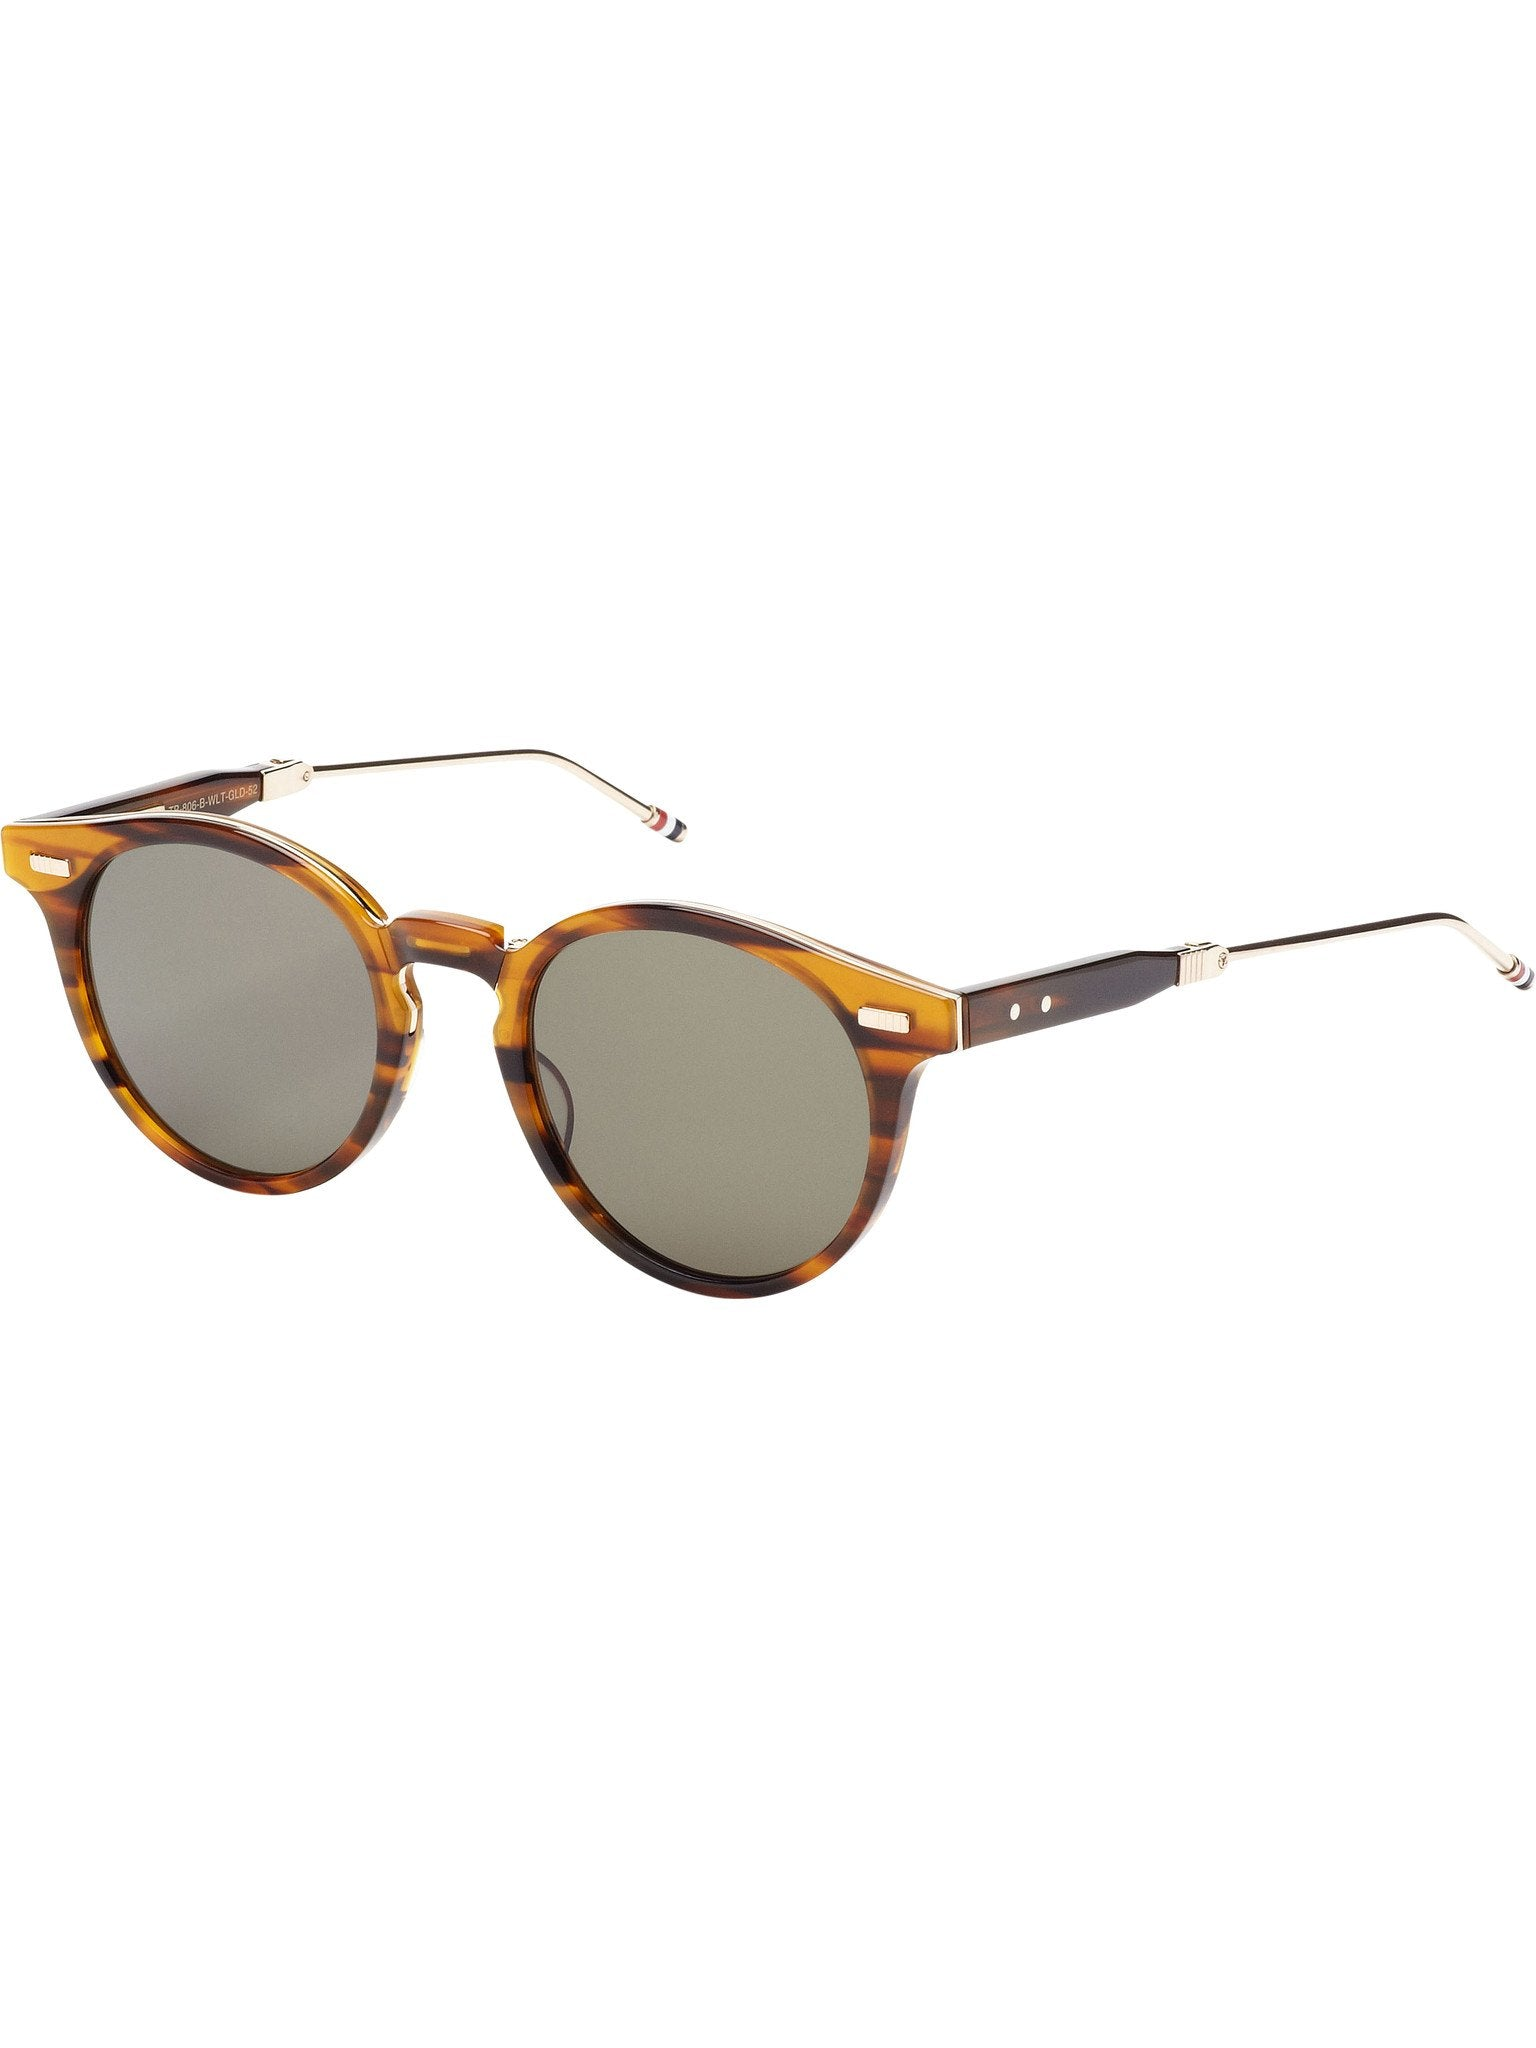 43e0347ebb Sunglasses - Thom Browne TB-806-B Sunglasses